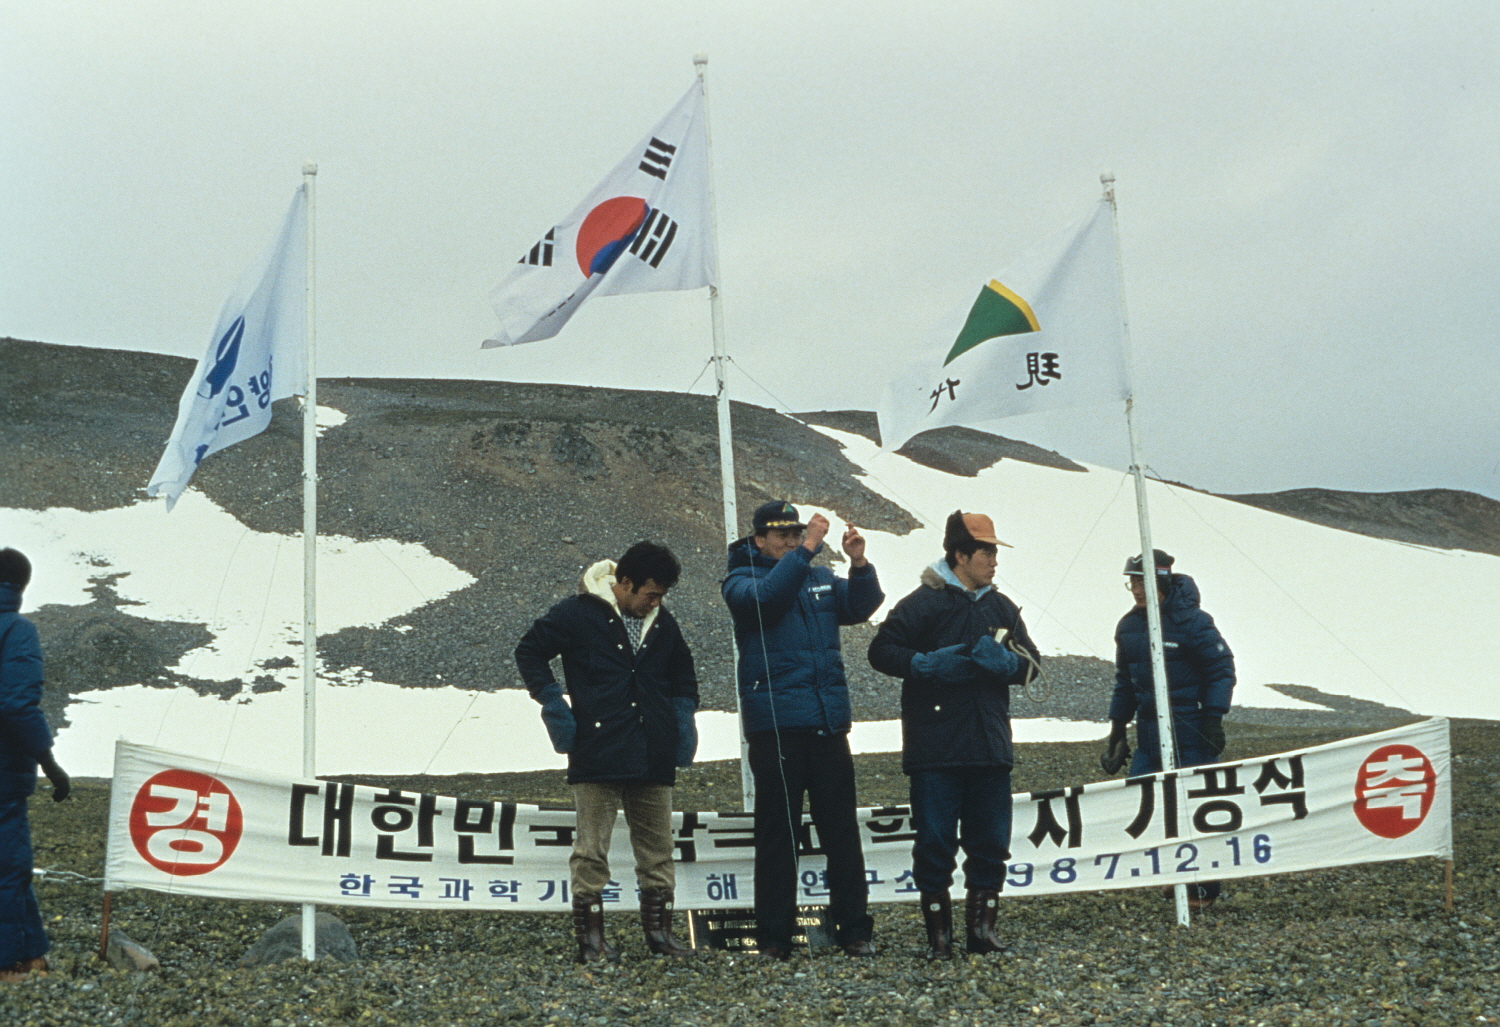 Korea joined the Scientific Committee on Antarctic Research (SCAR) as an associated member, and began the construction of King Sejong Station